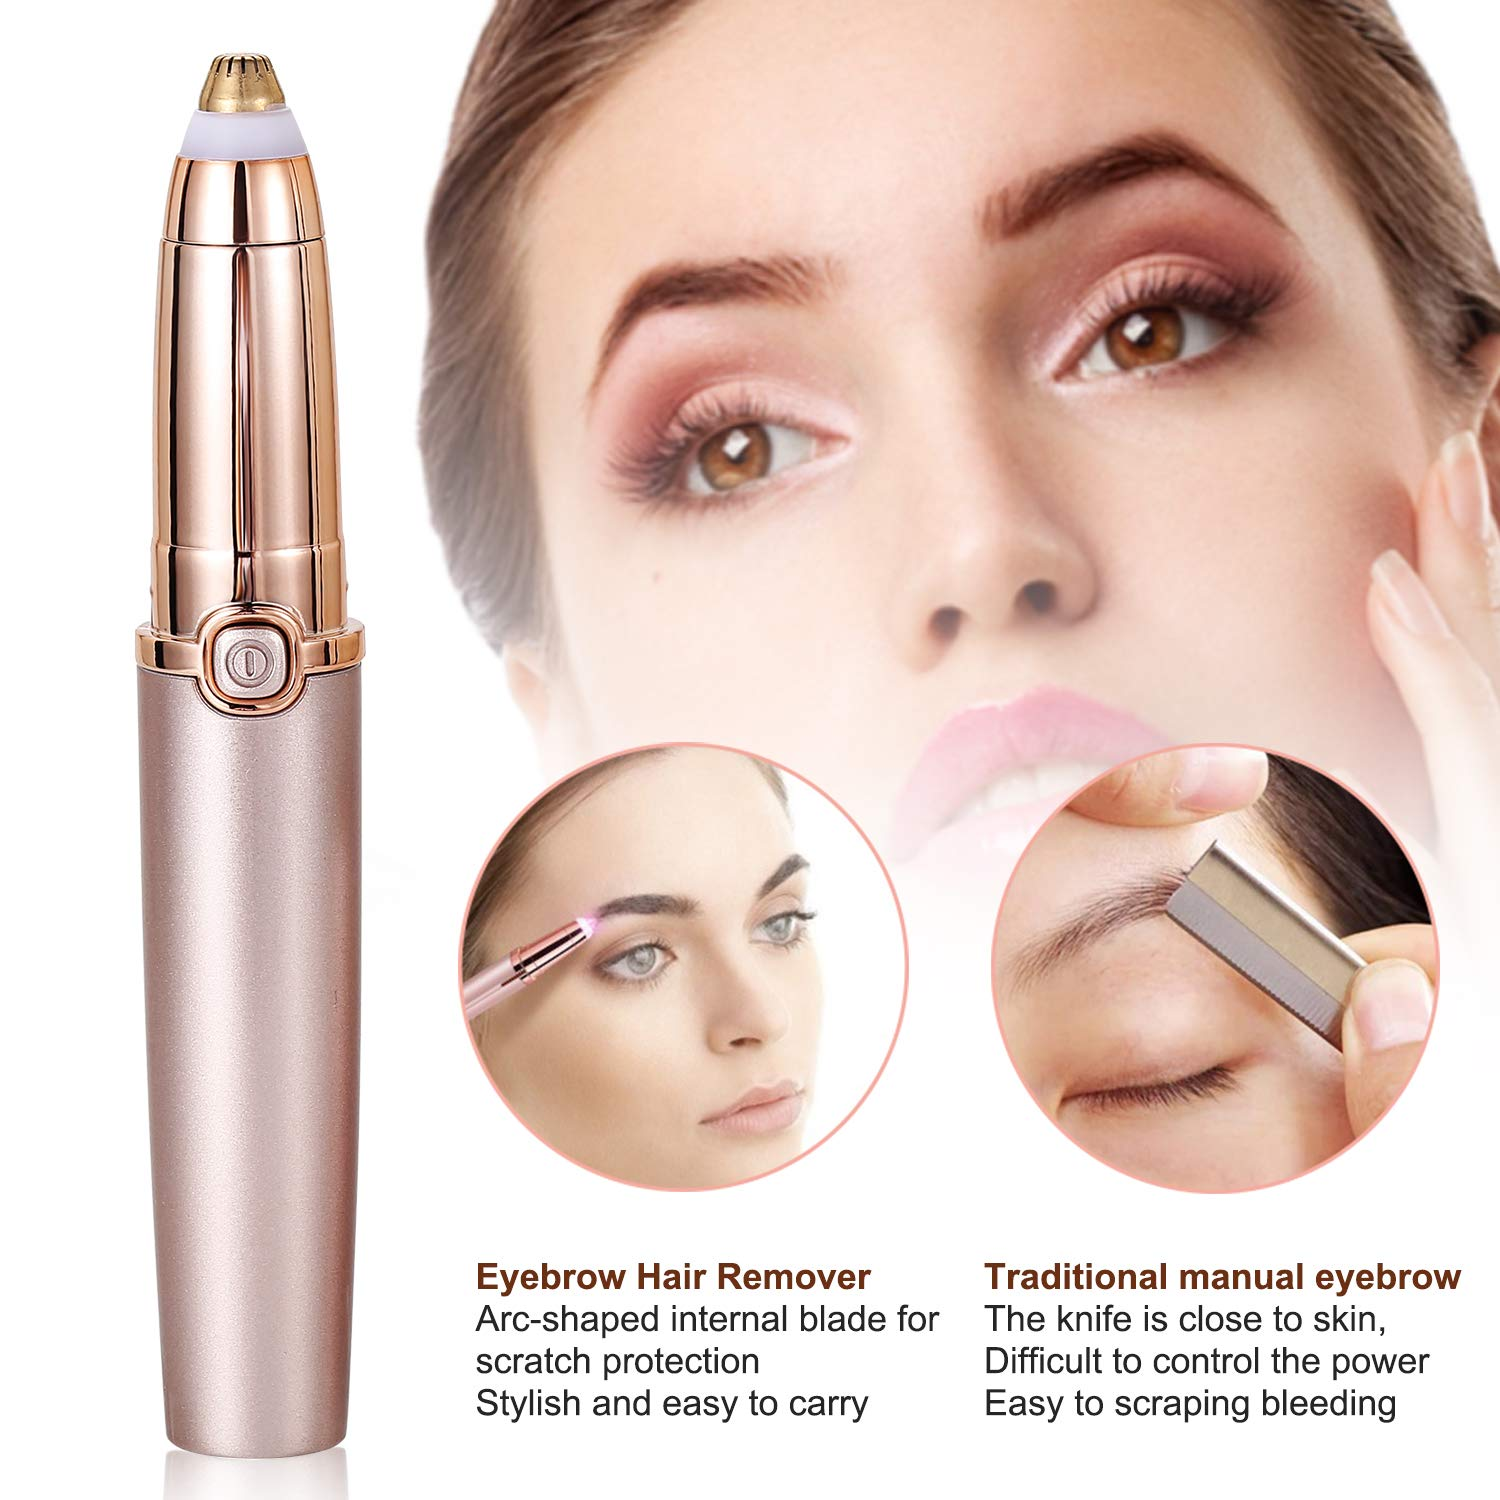 Eyebrow Trimmer for Women, Eyebrow Hair Trimmer, 2019 Upgraded Electric Eyebrow Trimmer, Premium Eyebrow Trimmer, Painless Facial Hair Removal with LED Light, Rose gold